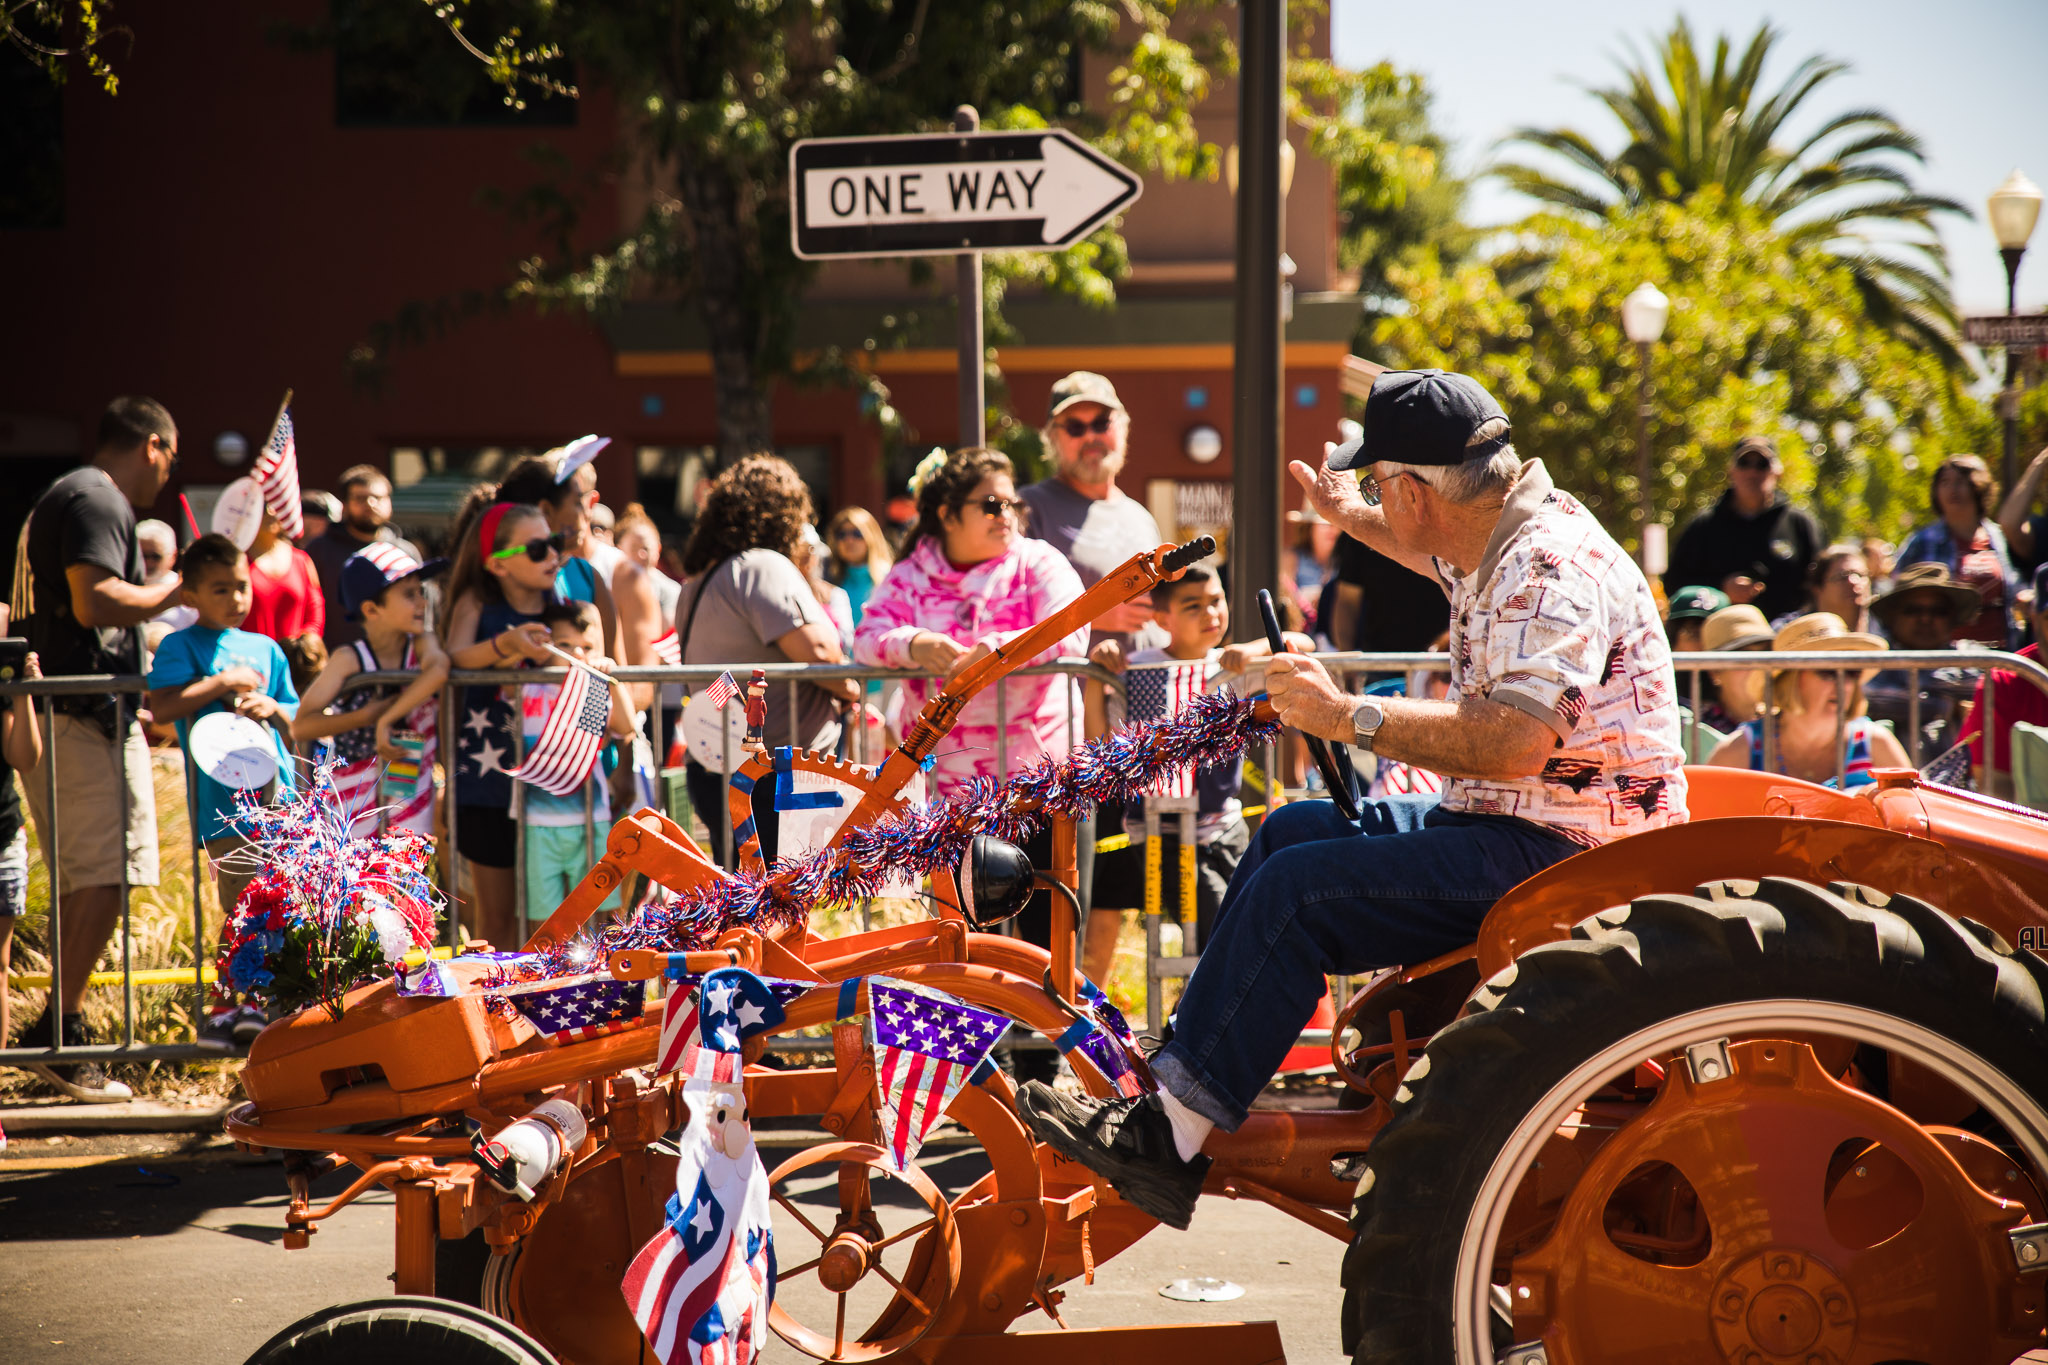 Archer_Inspired_Photography_Morgan_Hill_California_4th_of_july_parade-93.jpg